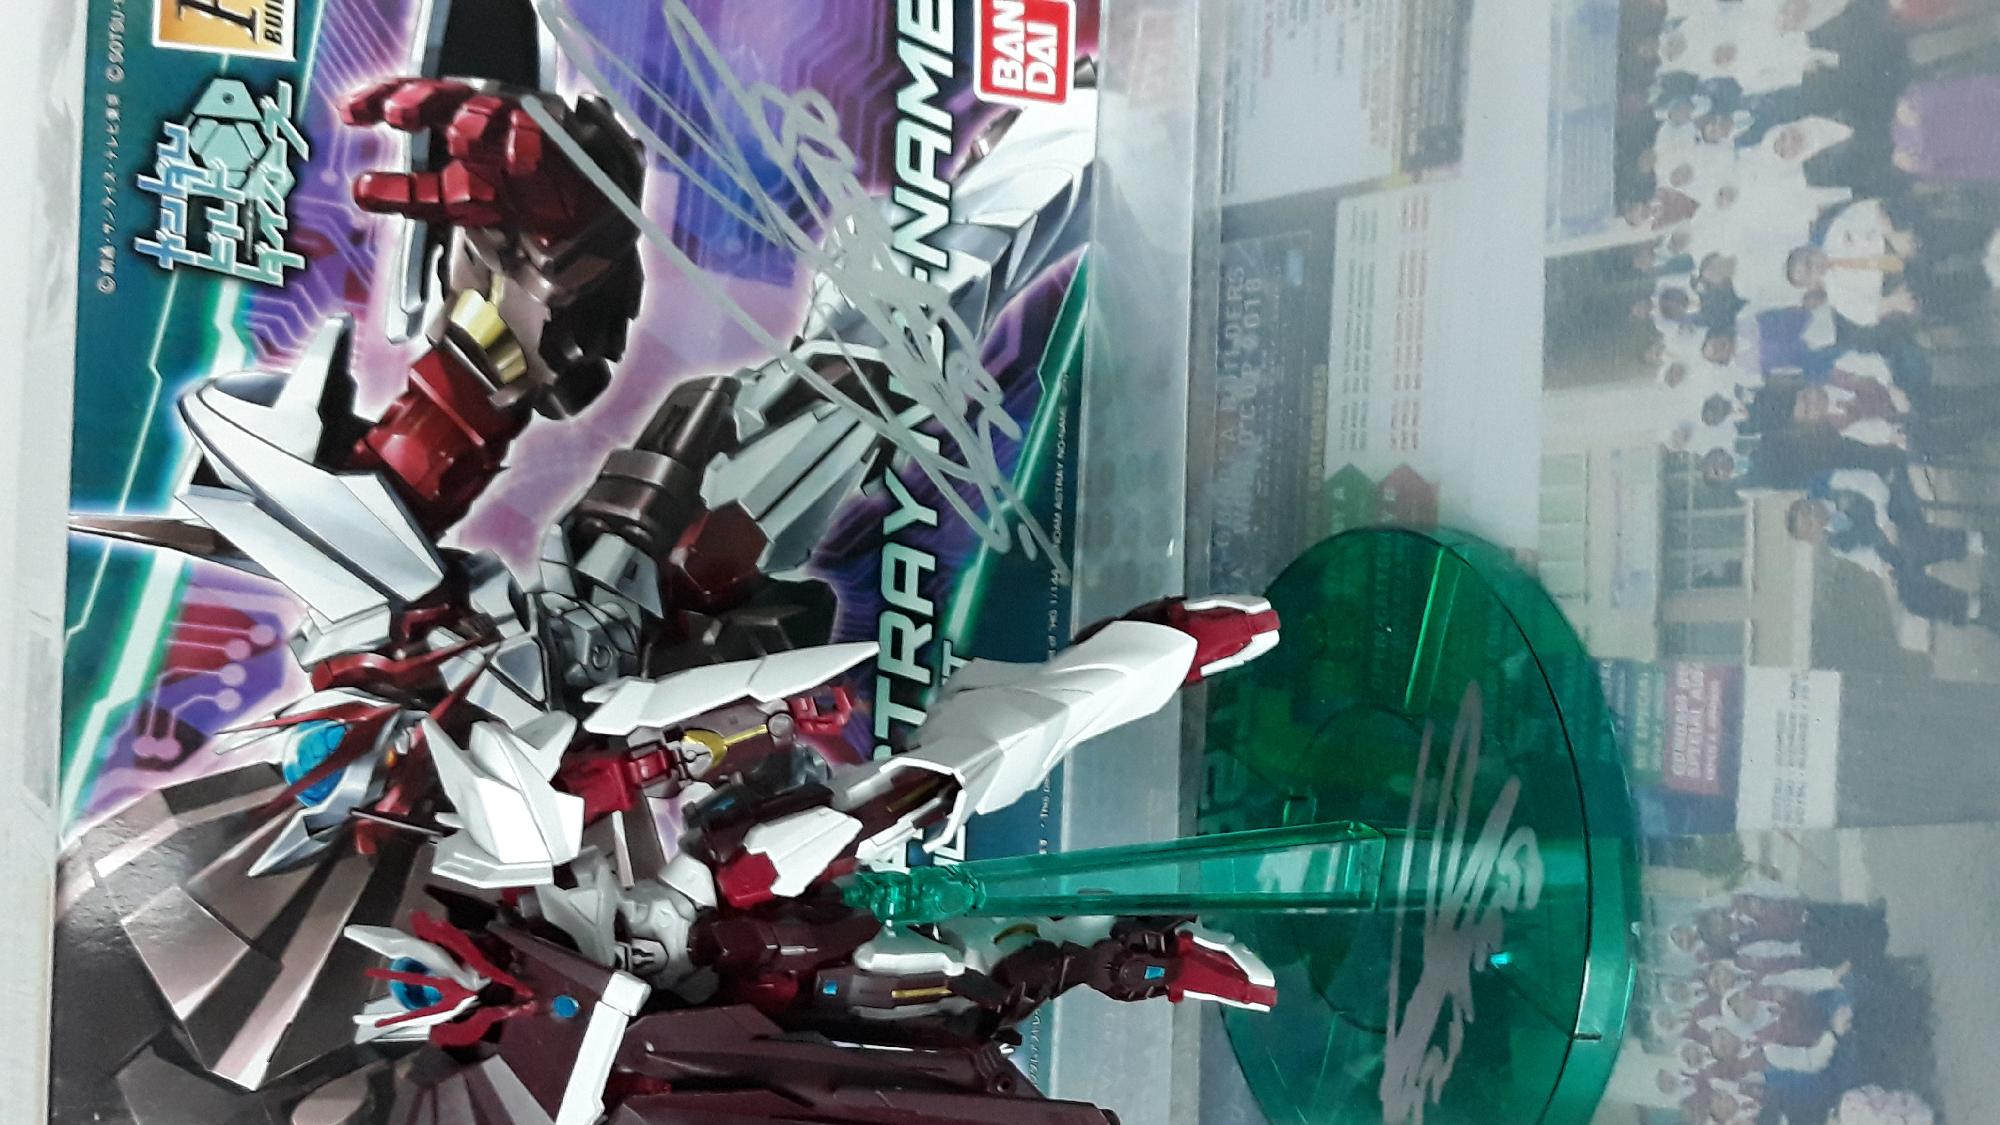 The astray no-name with meijin kawaguchi's signature